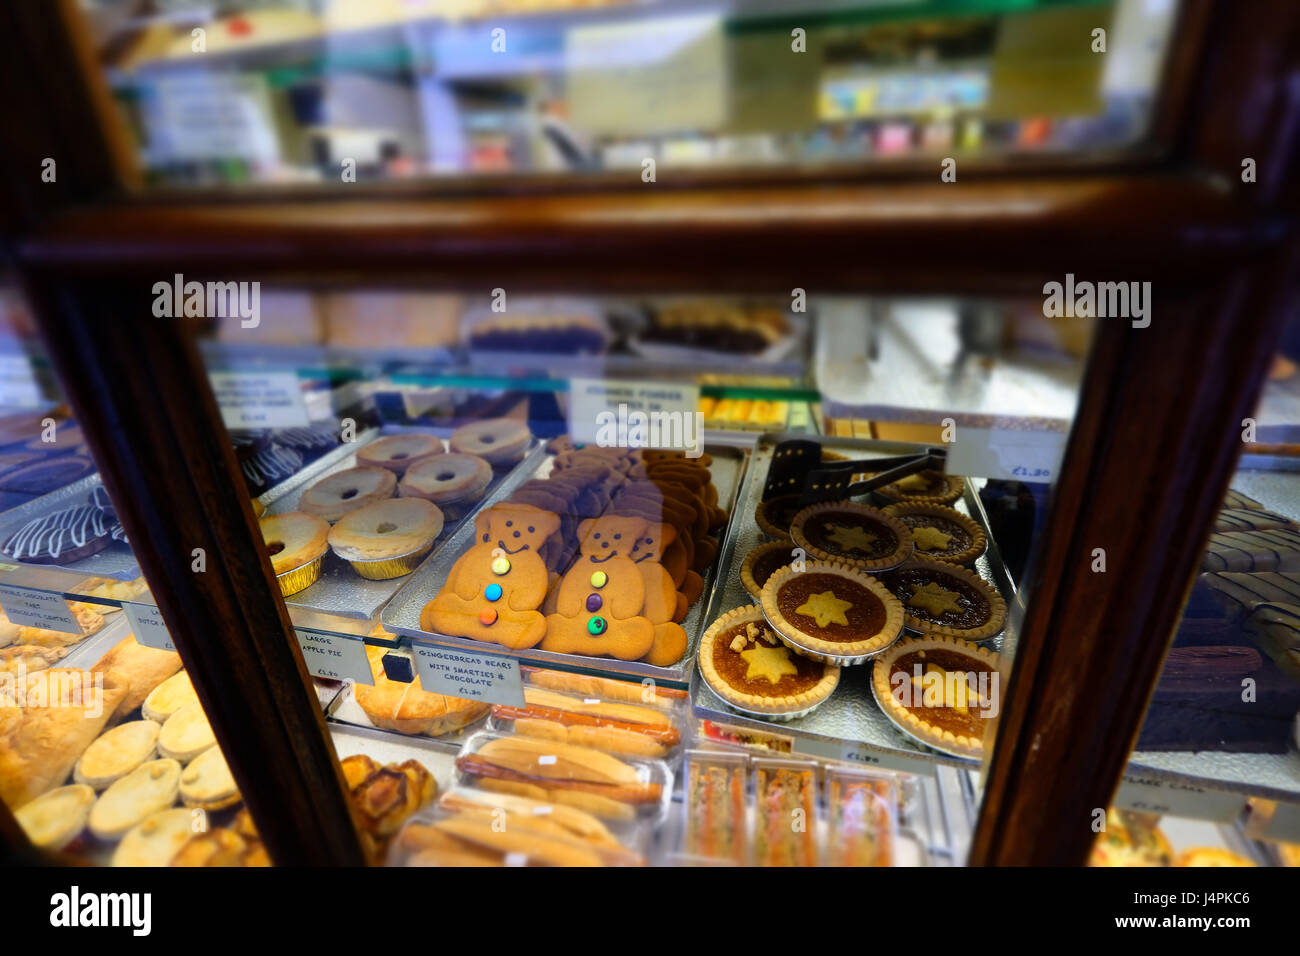 Bread Shelf Stockfotos & Bread Shelf Bilder - Alamy